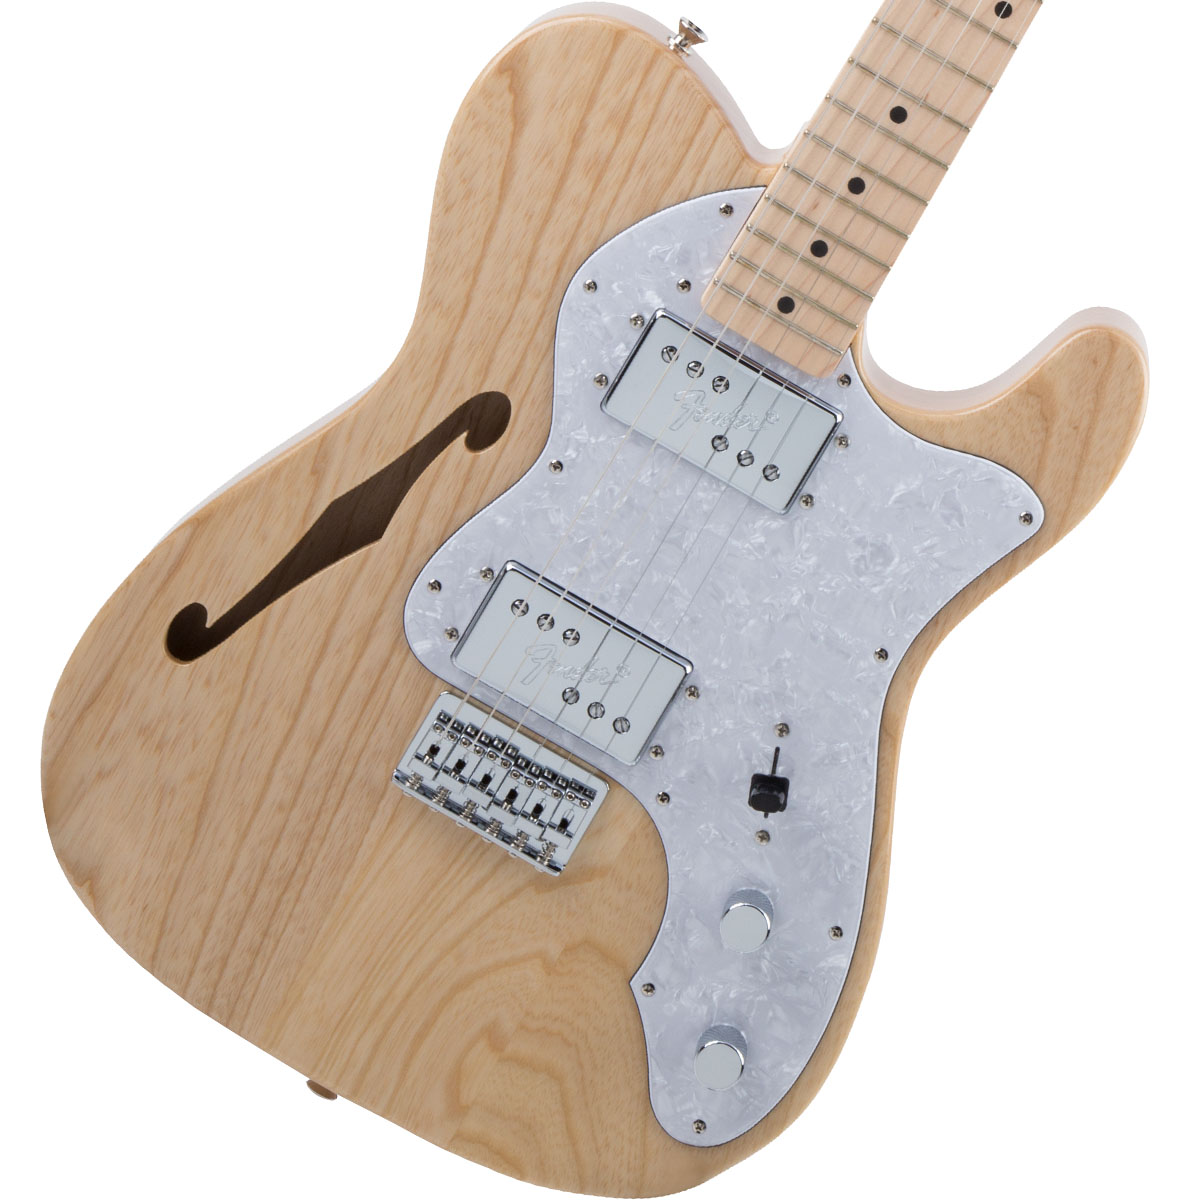 Fender / Made in Japan Traditional 70s Telecaster Thinline Maple Fingerboard Natural 《カスタムショップのお手入れ用品を進呈/+671038200》